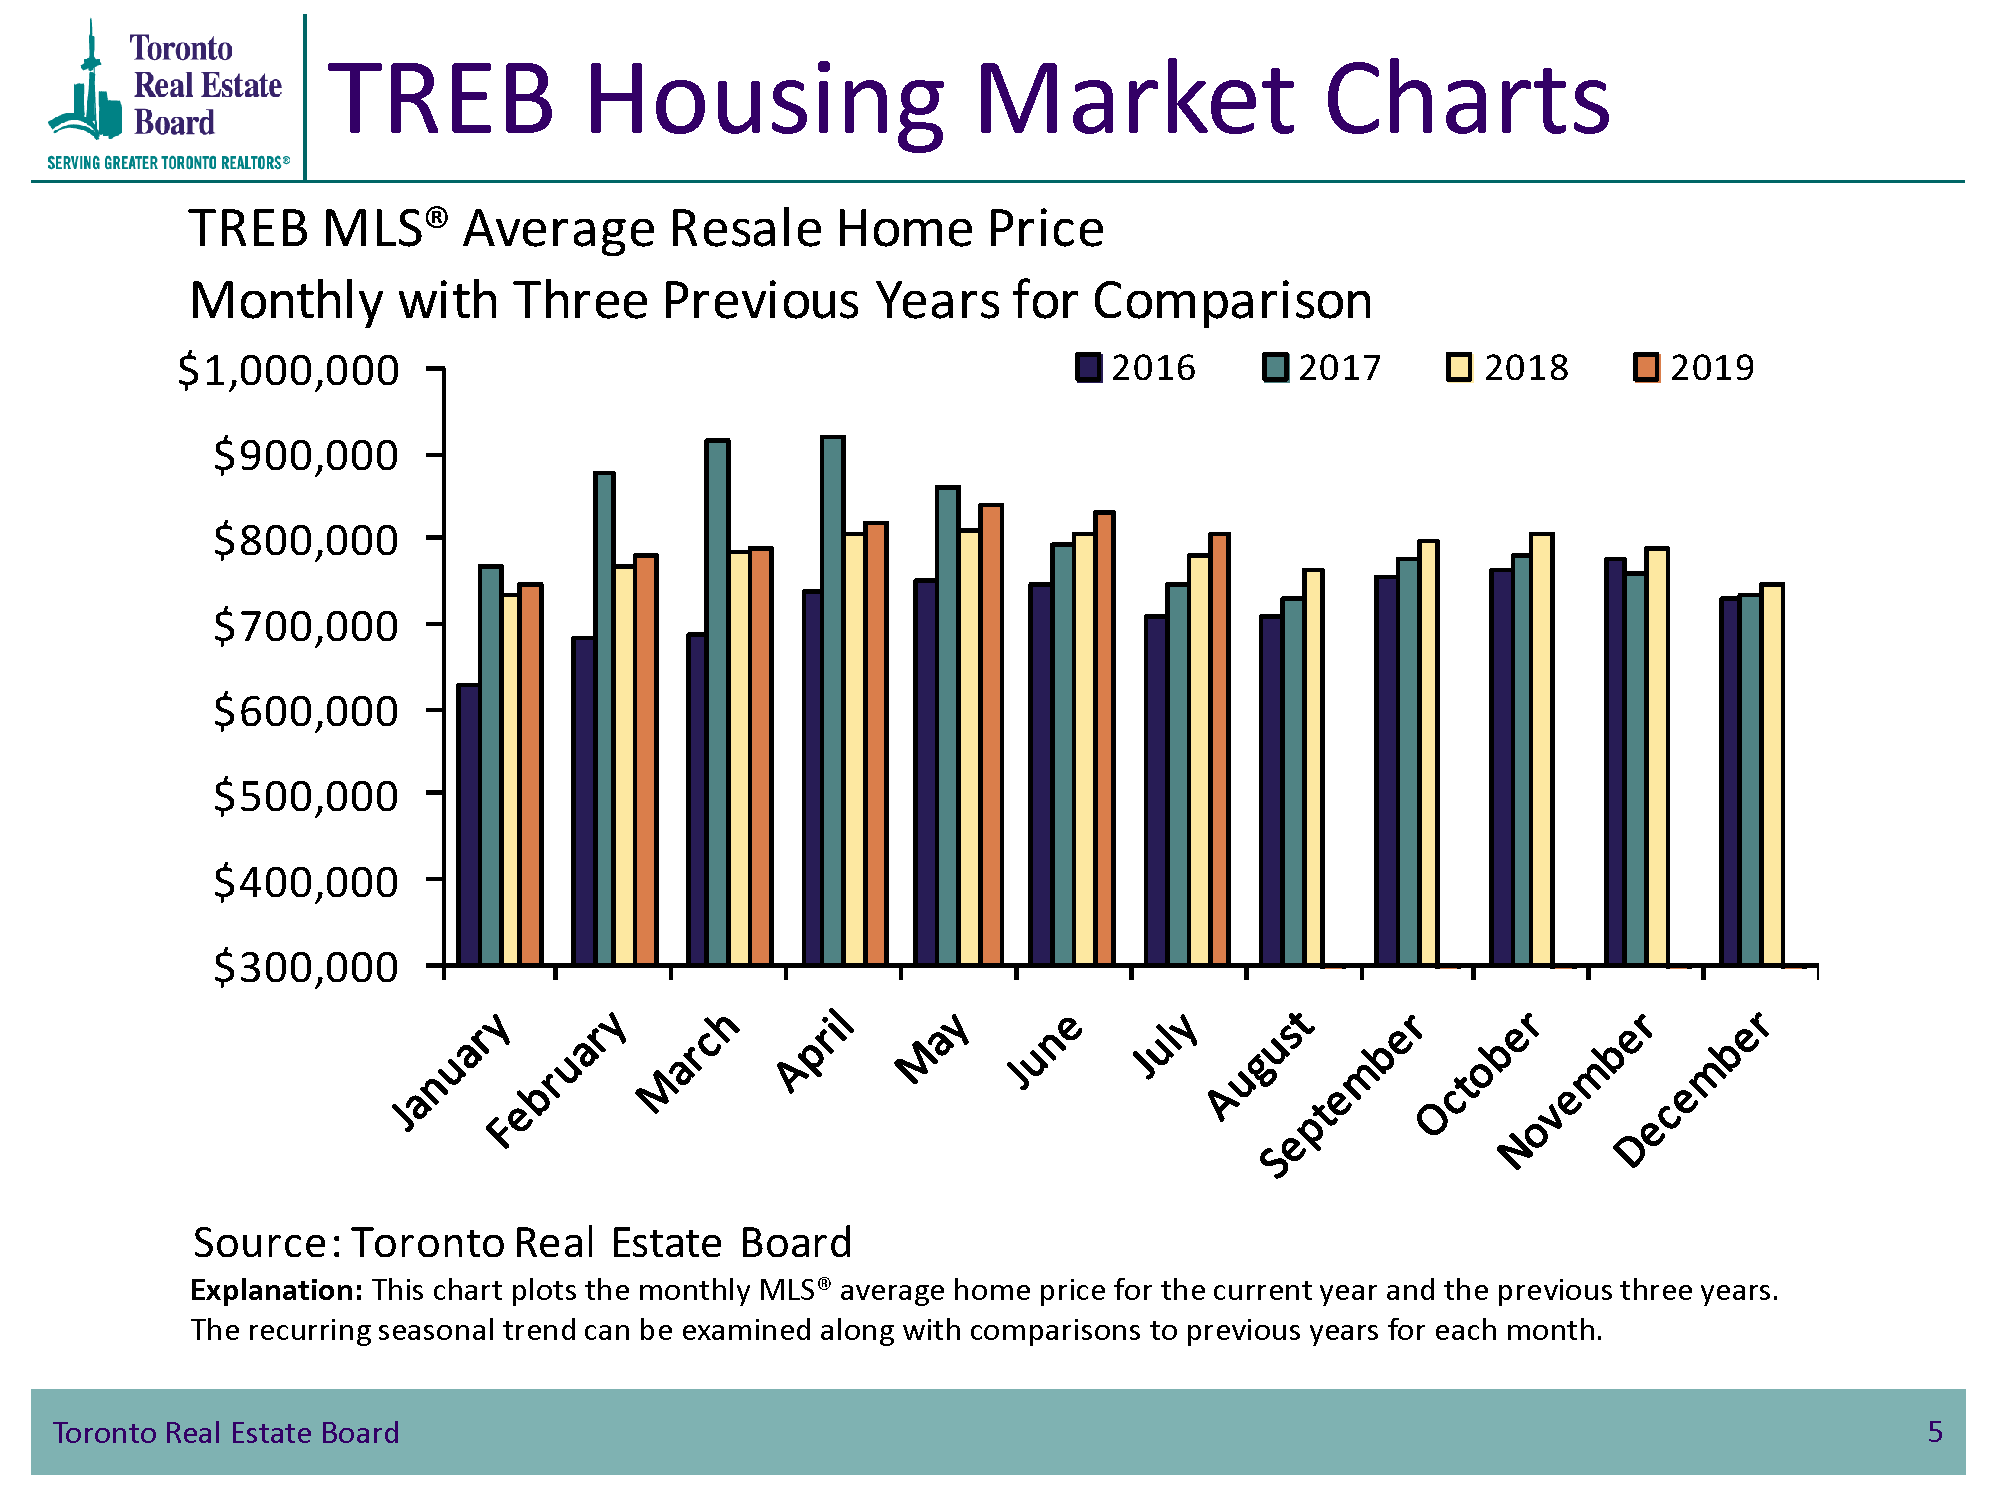 TREB Housing Market Charts - Average Resale Home Price